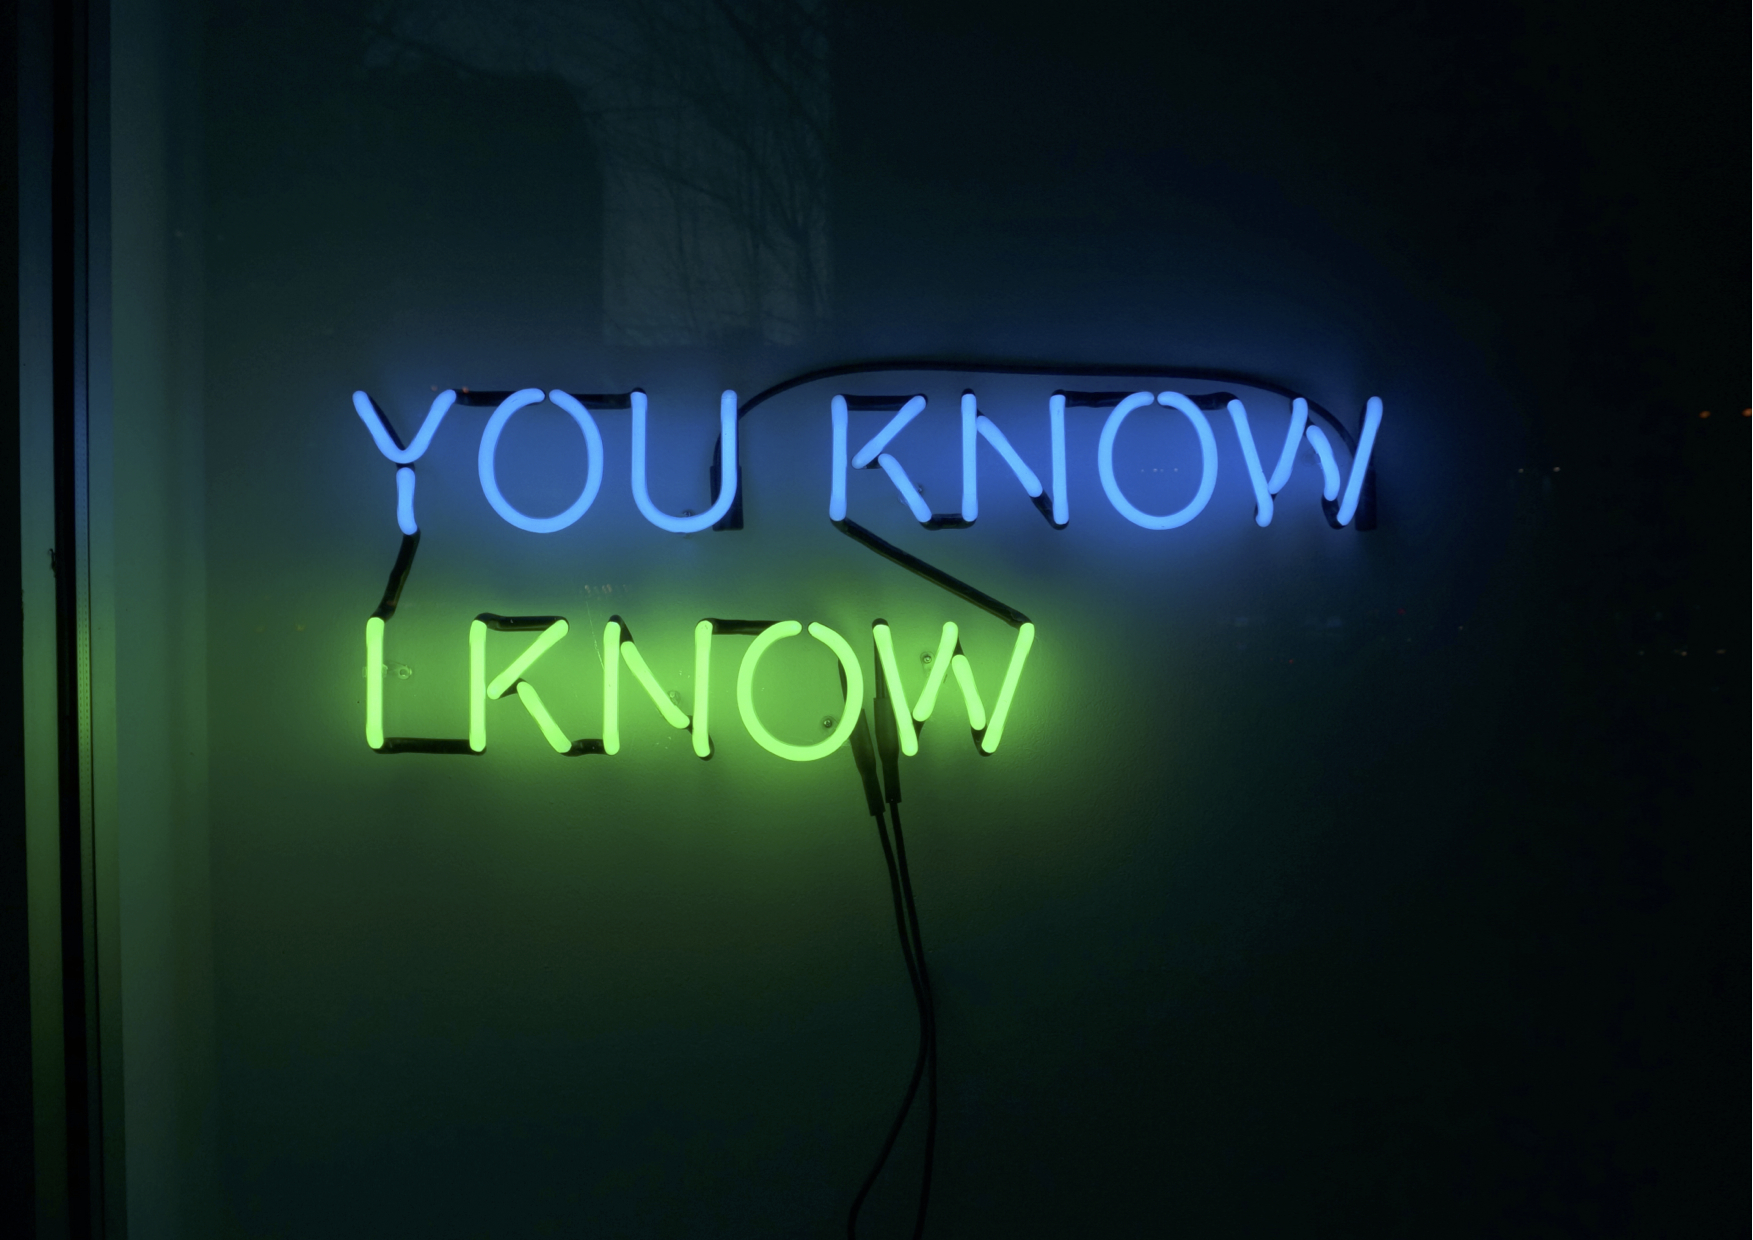 Tim Etchells, Who Knows (detail), 2014. Neon (12 Pairs, 24 Phrases). Dimensions variable. Edition of 2 (+1 AP).